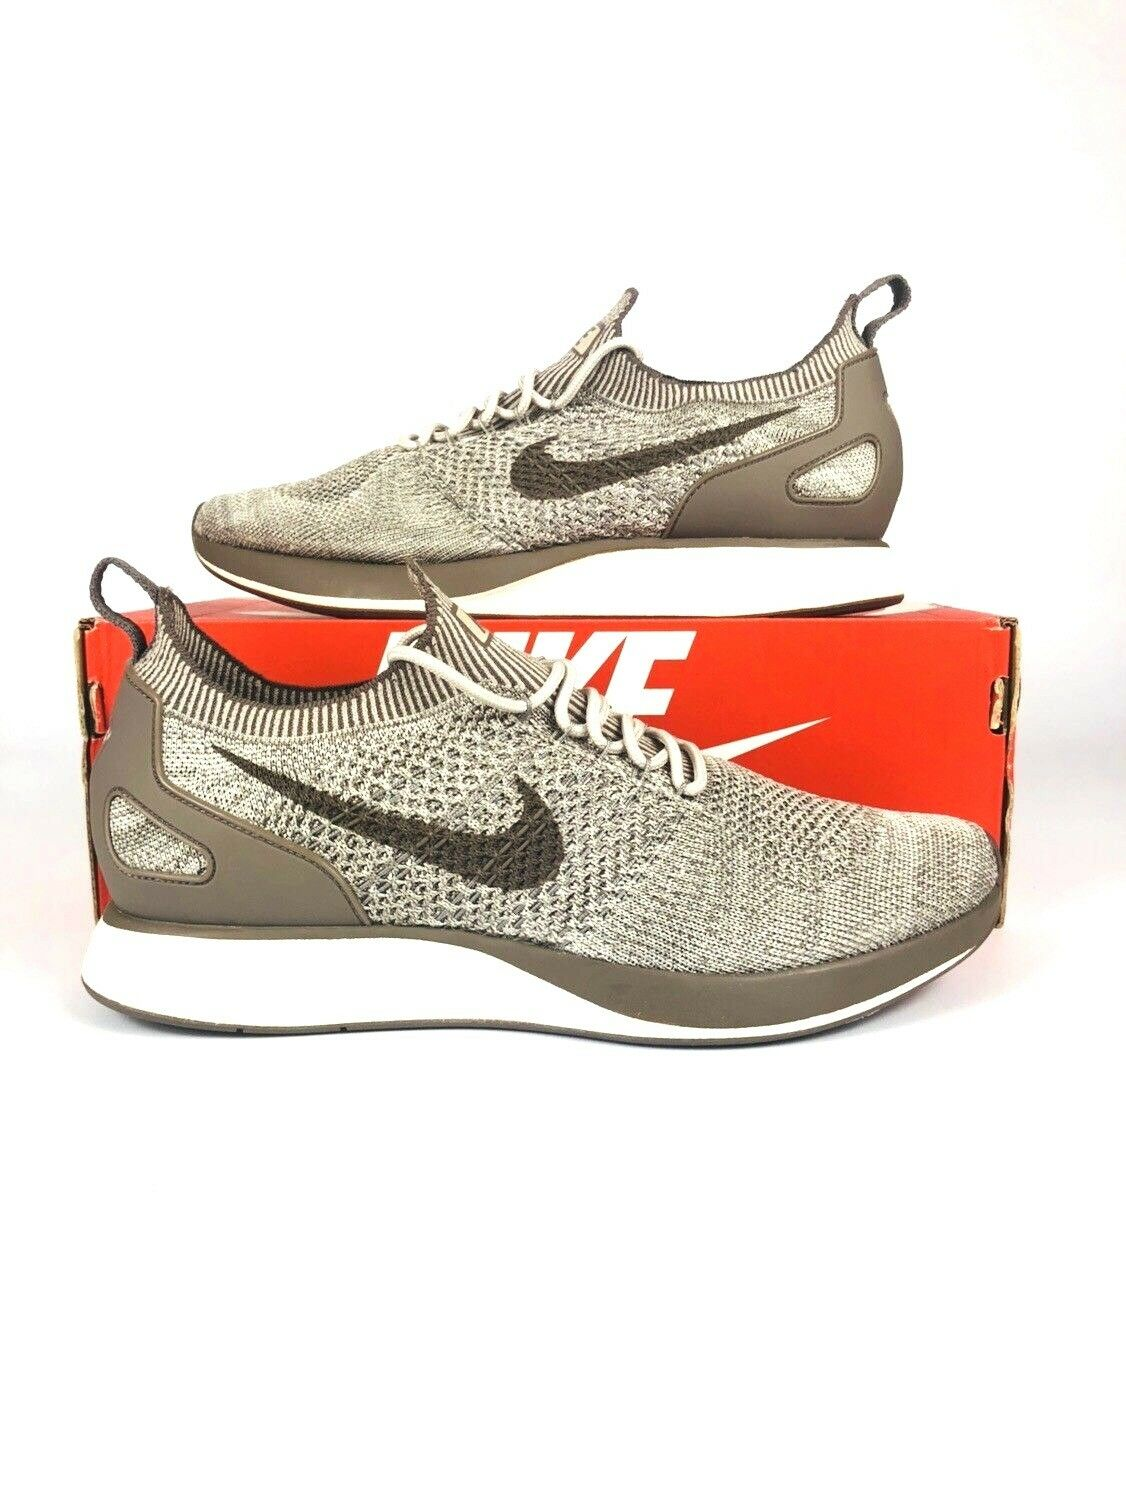 Nike Air Zoom Mariah Flyknit Racer men's running shoes 918264 200 multiple sizes